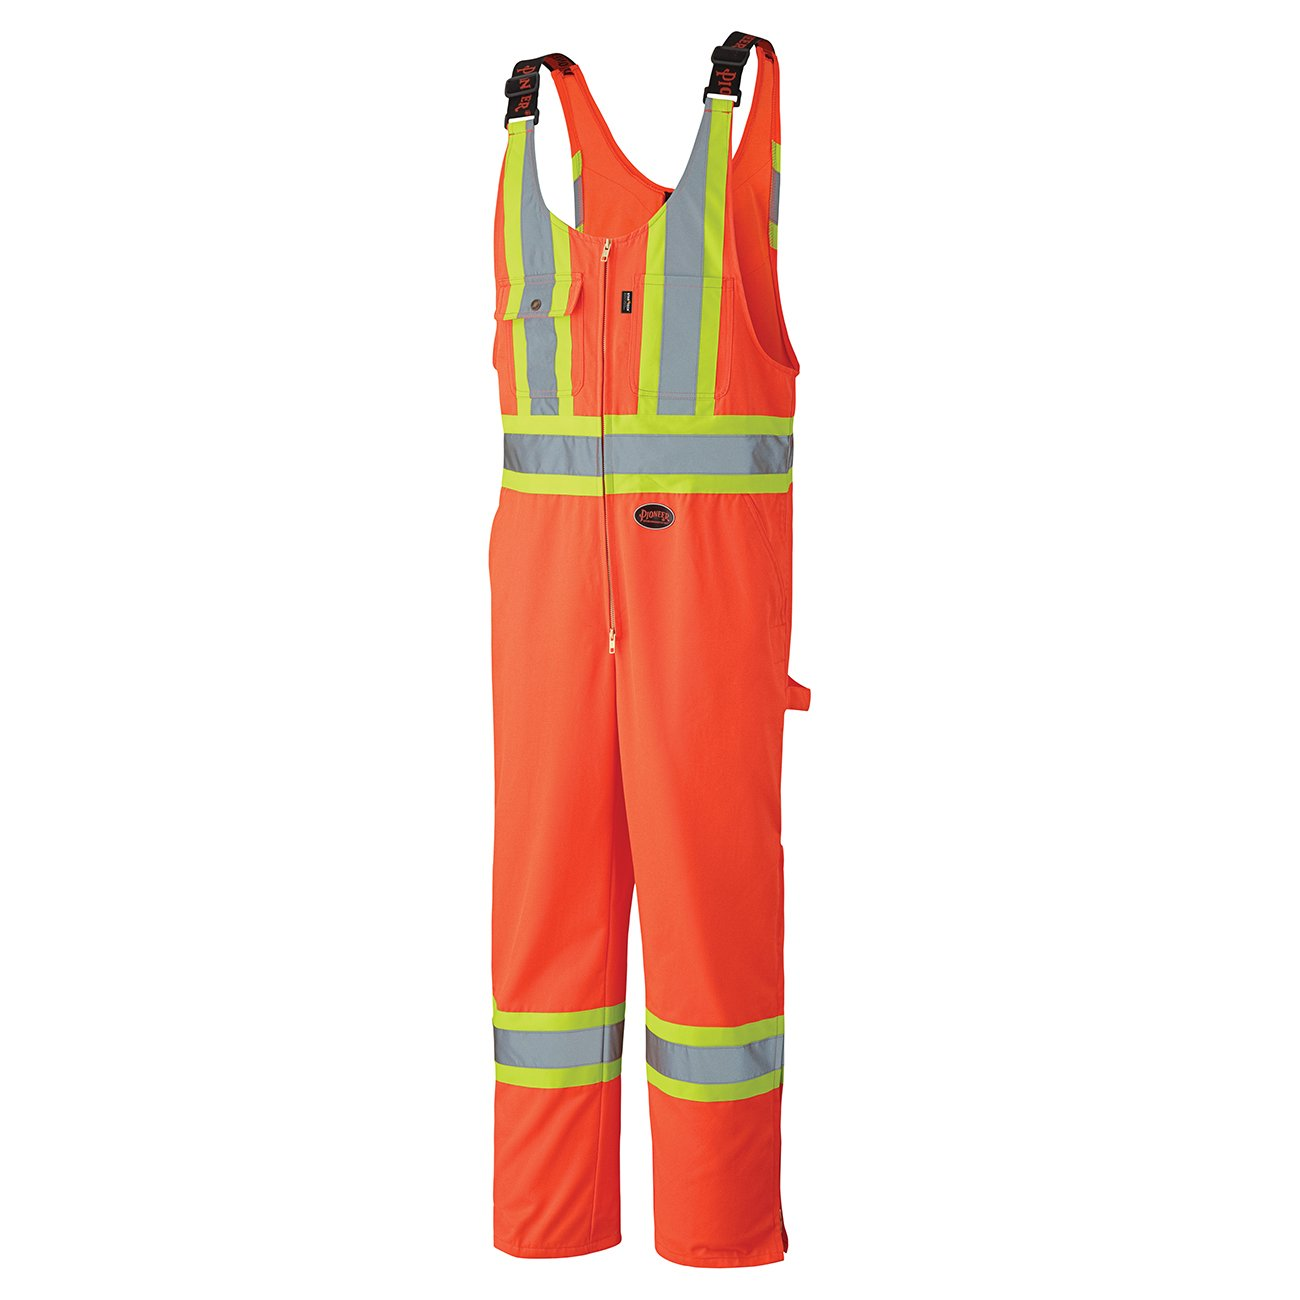 Pioneer V1160250-2XL High Visibility Safety Overall Bib Pants - Leg Zippers, Orange, 2XL